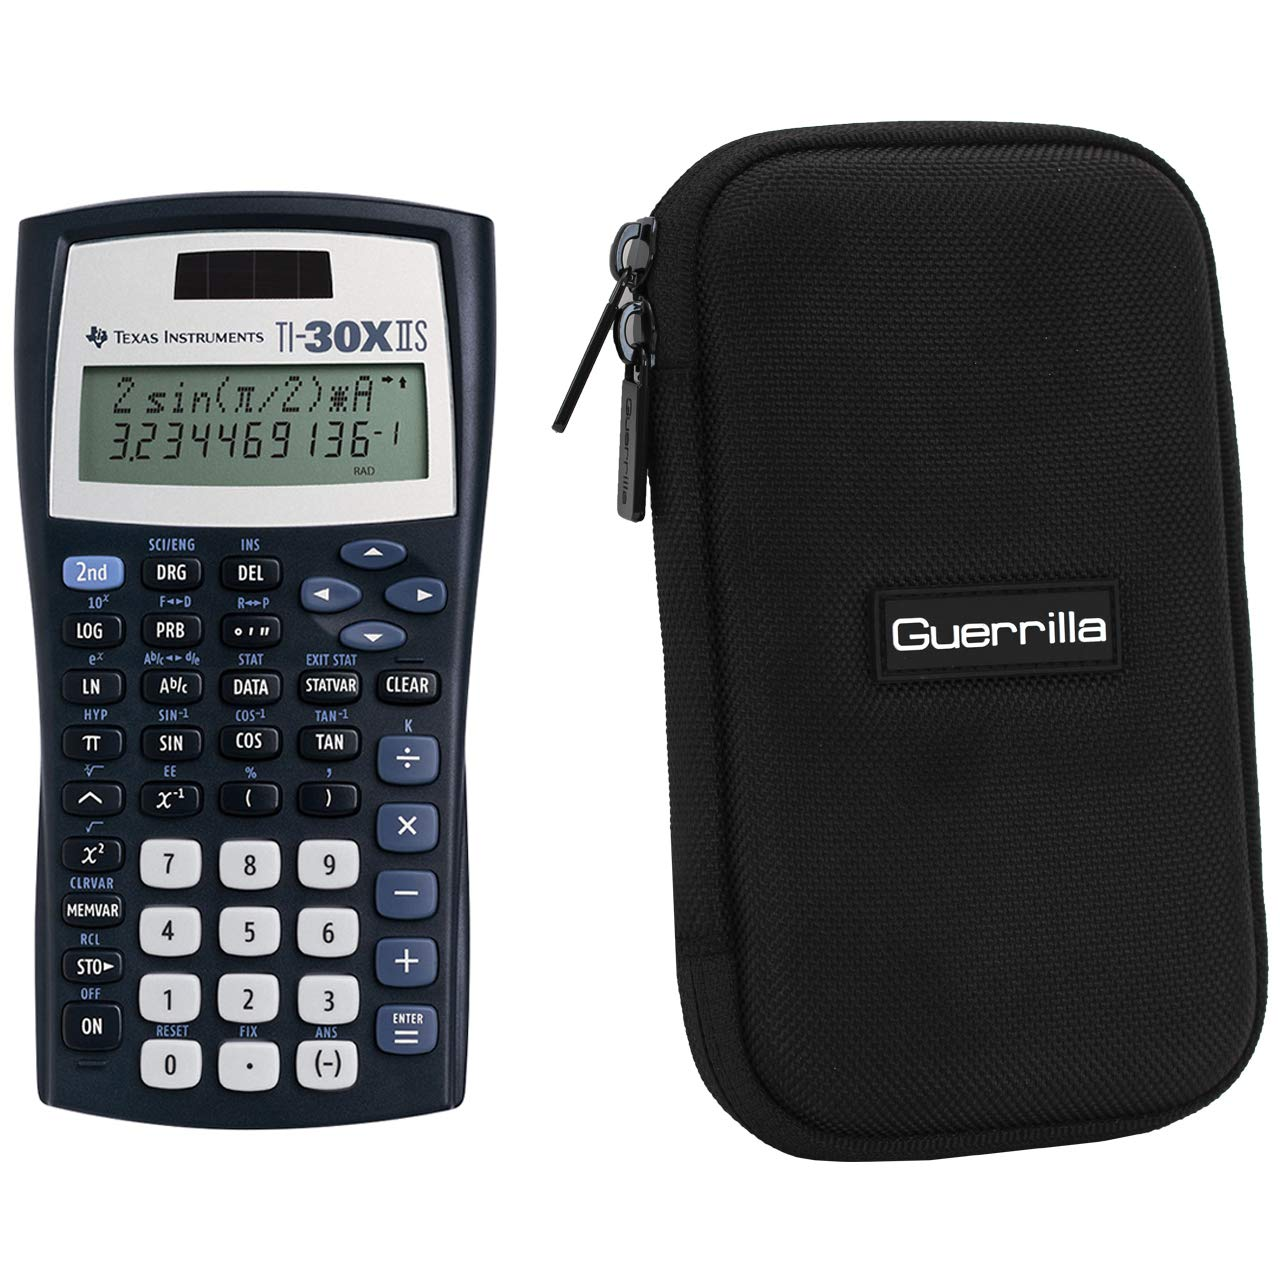 Texas Instruments TI-30XIIS Scientific Calculator + Guerrilla Zipper Case, for Extra Protection & Easy Storing (Black) by Texas Instruments